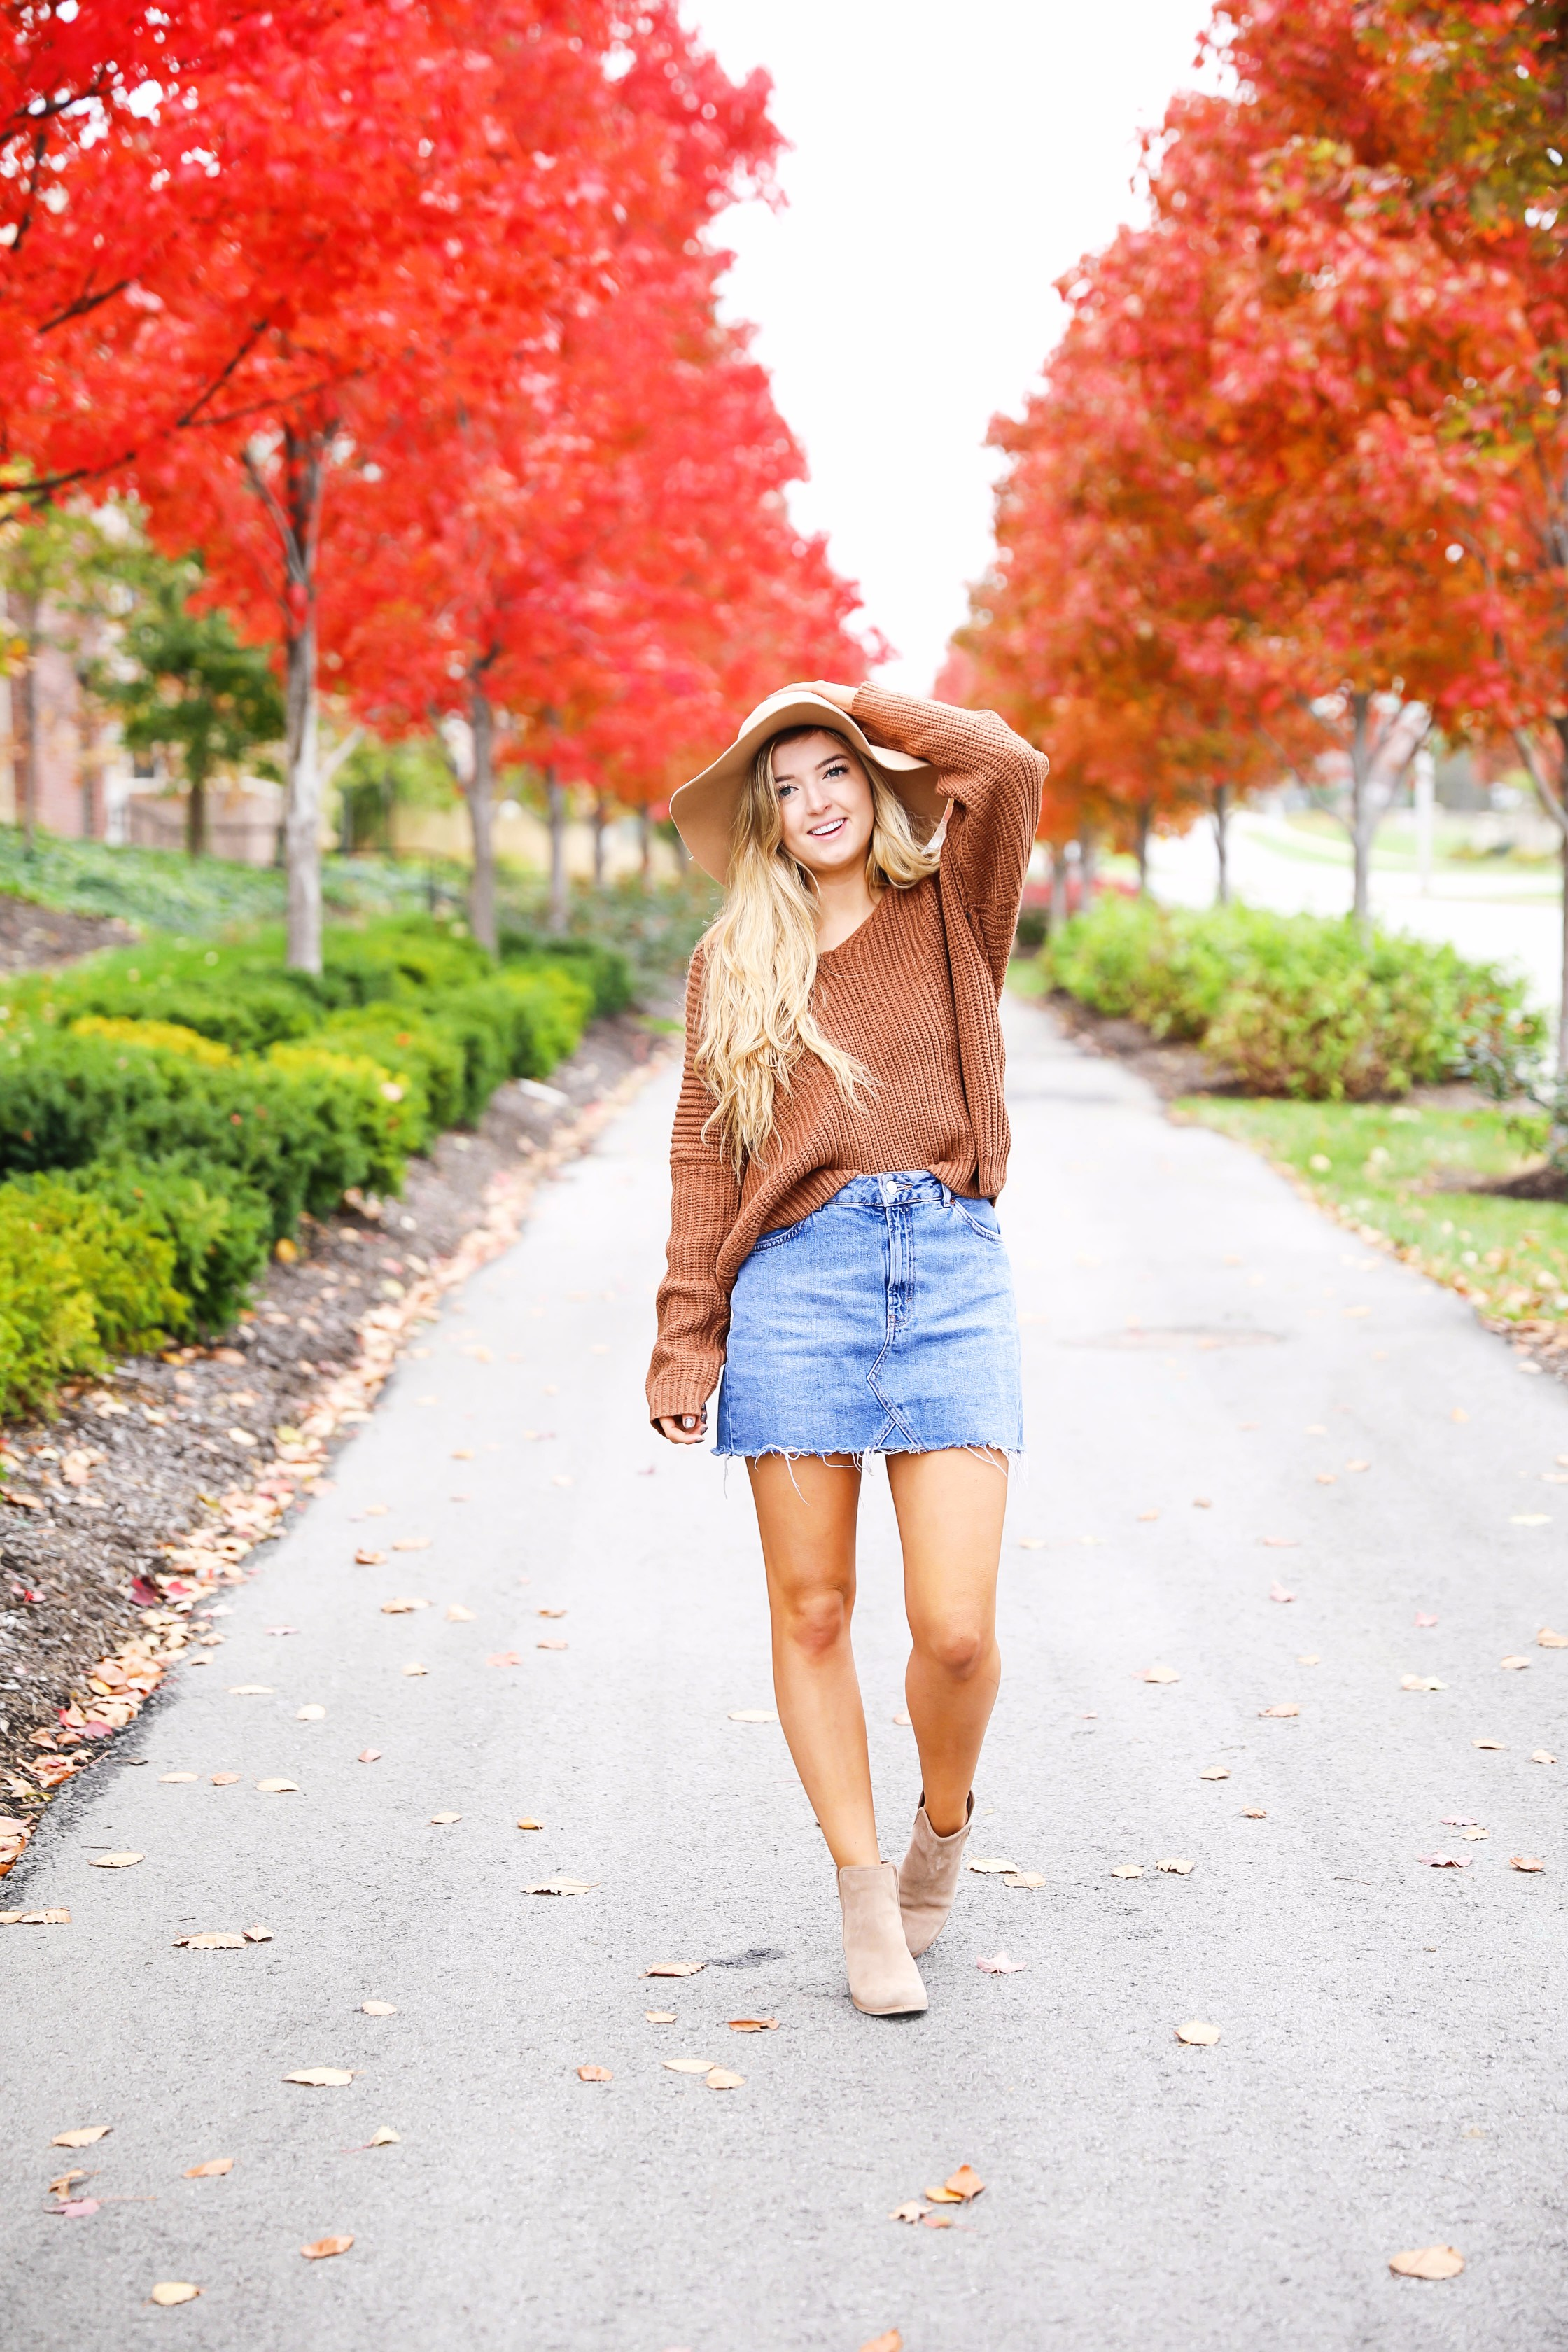 Burnt orange sweater that is crisscrossed tied in the back! Perfect for fall paired with jeanskirt and floppy felt hat. Fall and thanksgiving outfit ideas! Details on fashion blog daily dose of charm by lauren lindmark